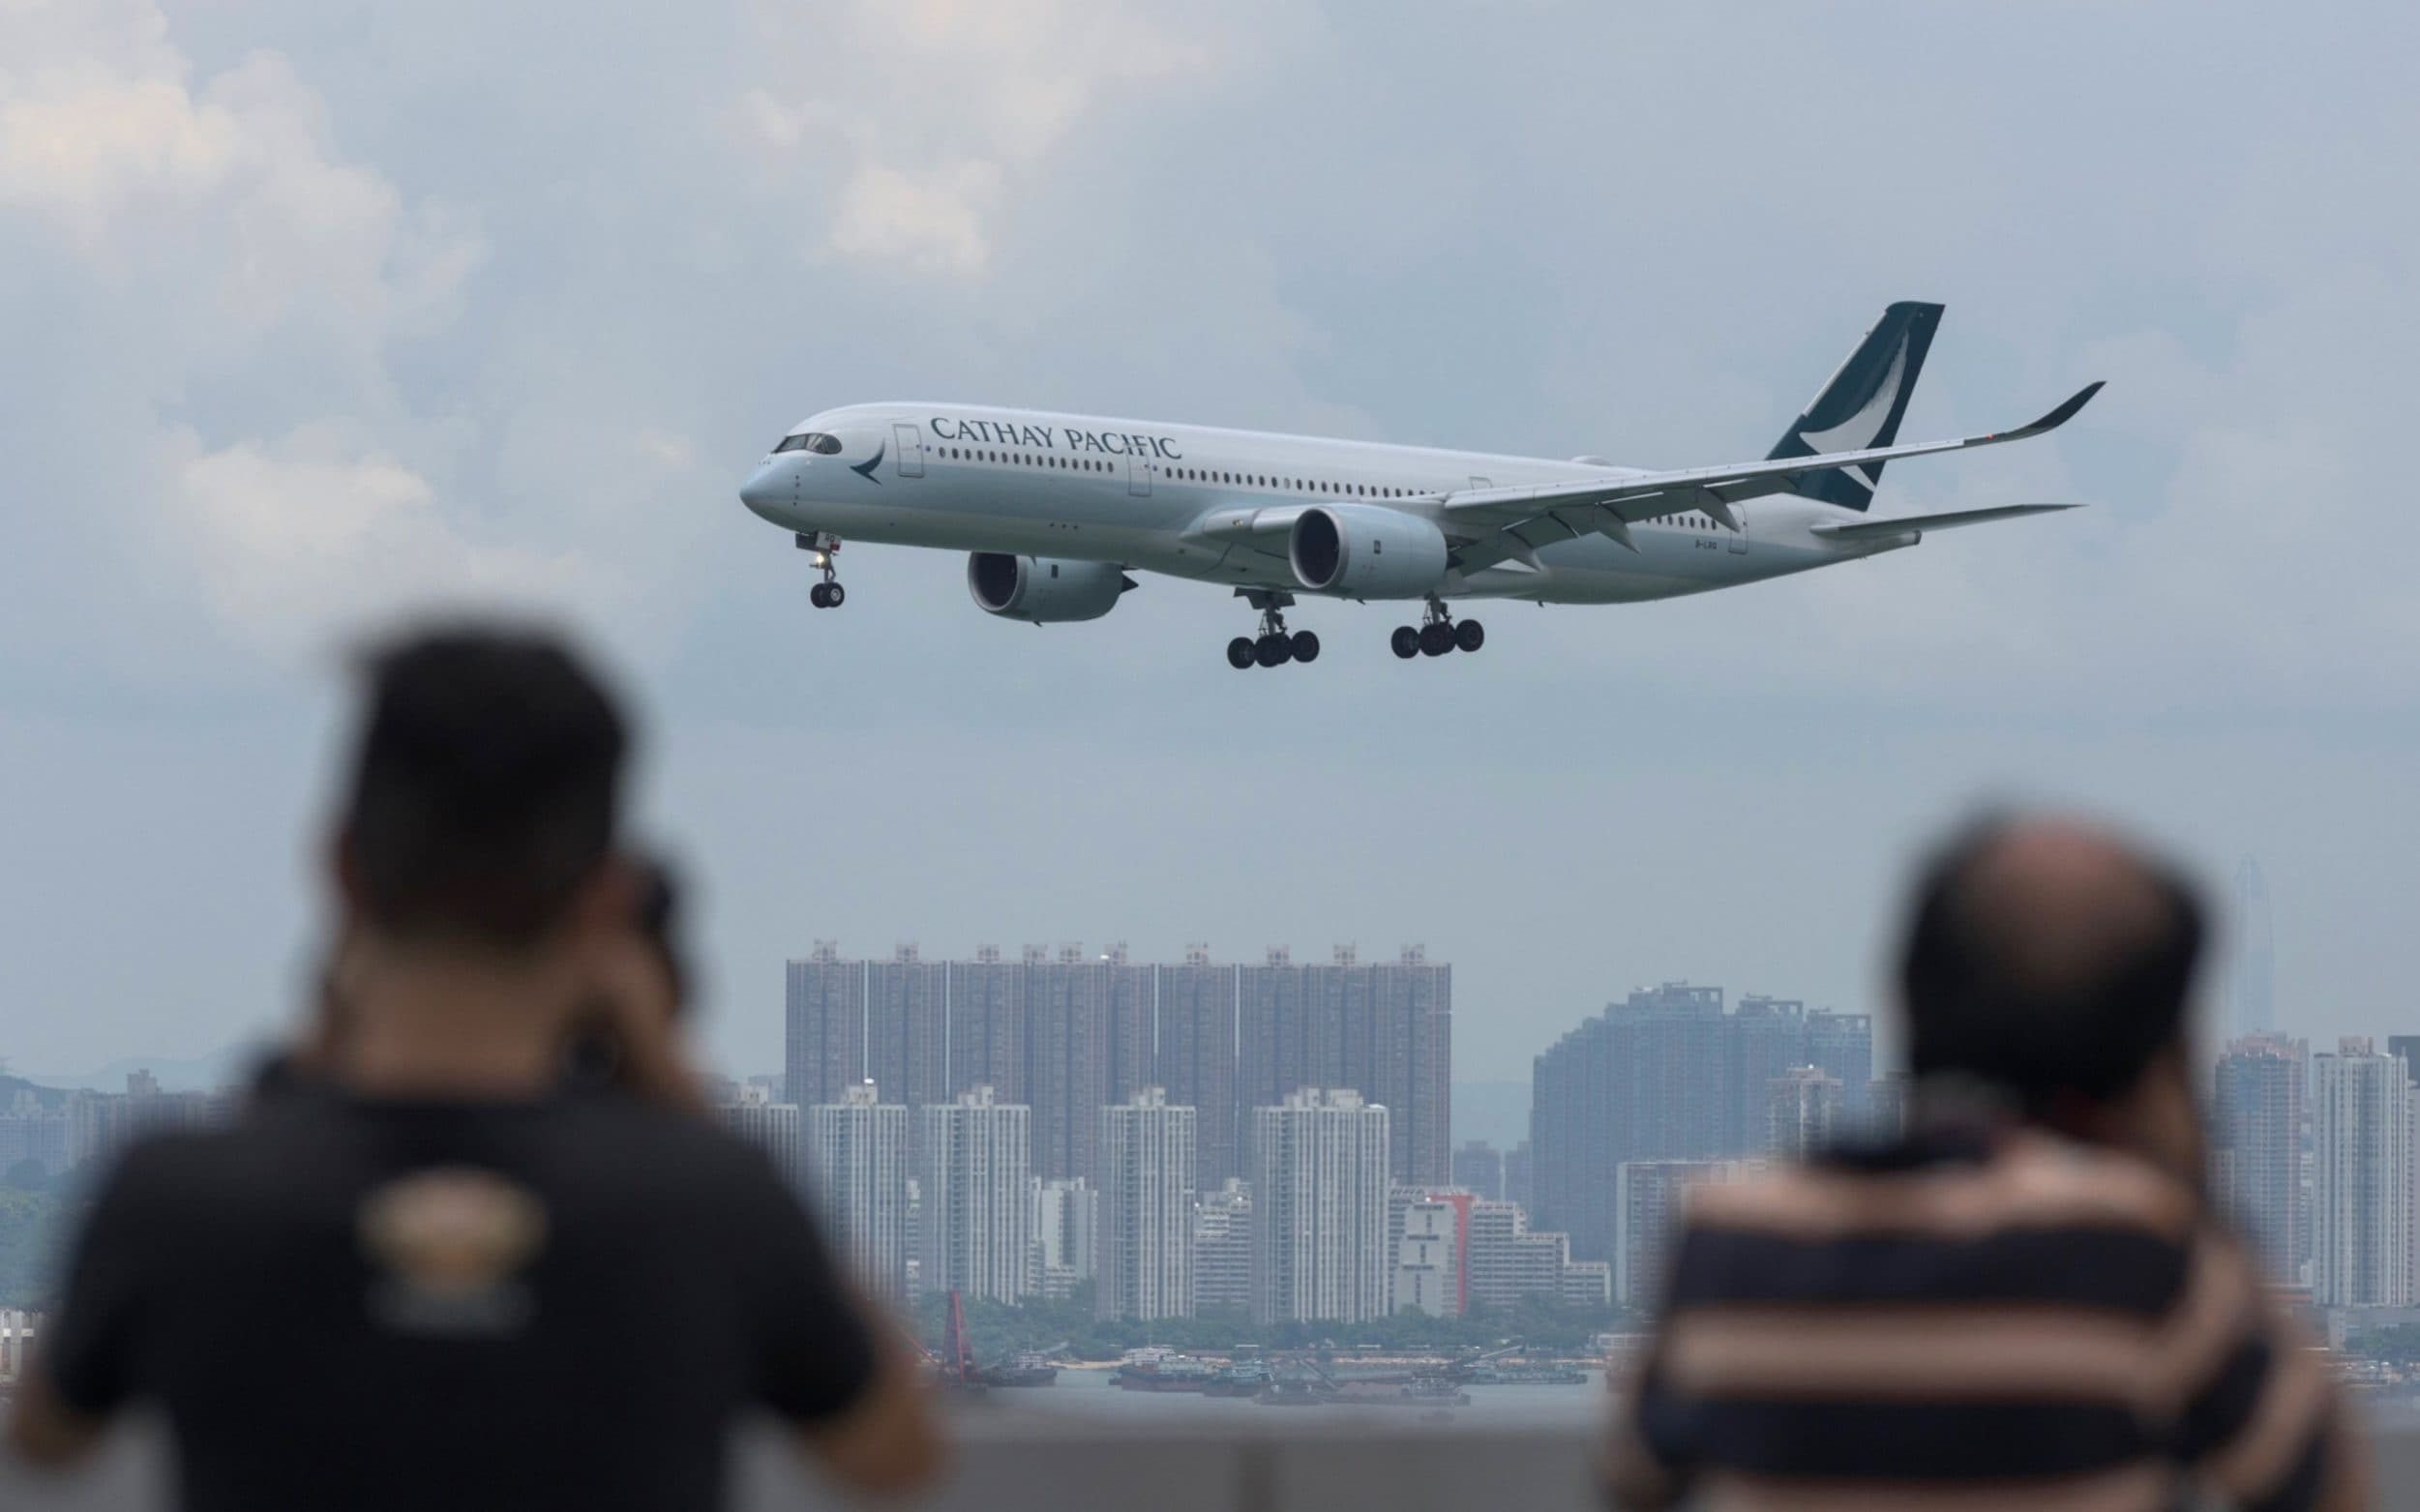 Hong Kong Express Airways says sorry after forcing passenger to take pregnancy test